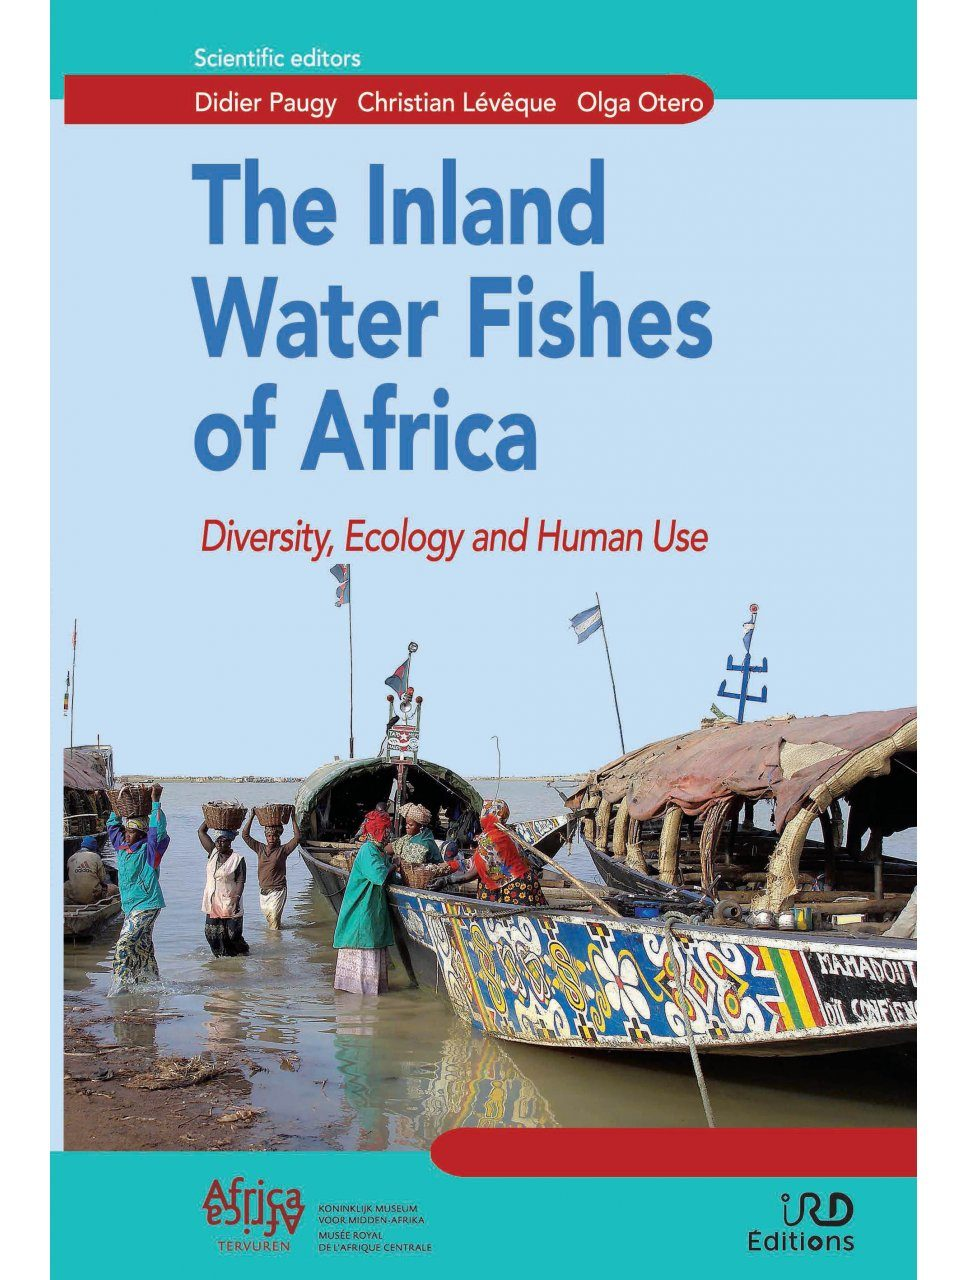 The Inland Water Fishes of Africa